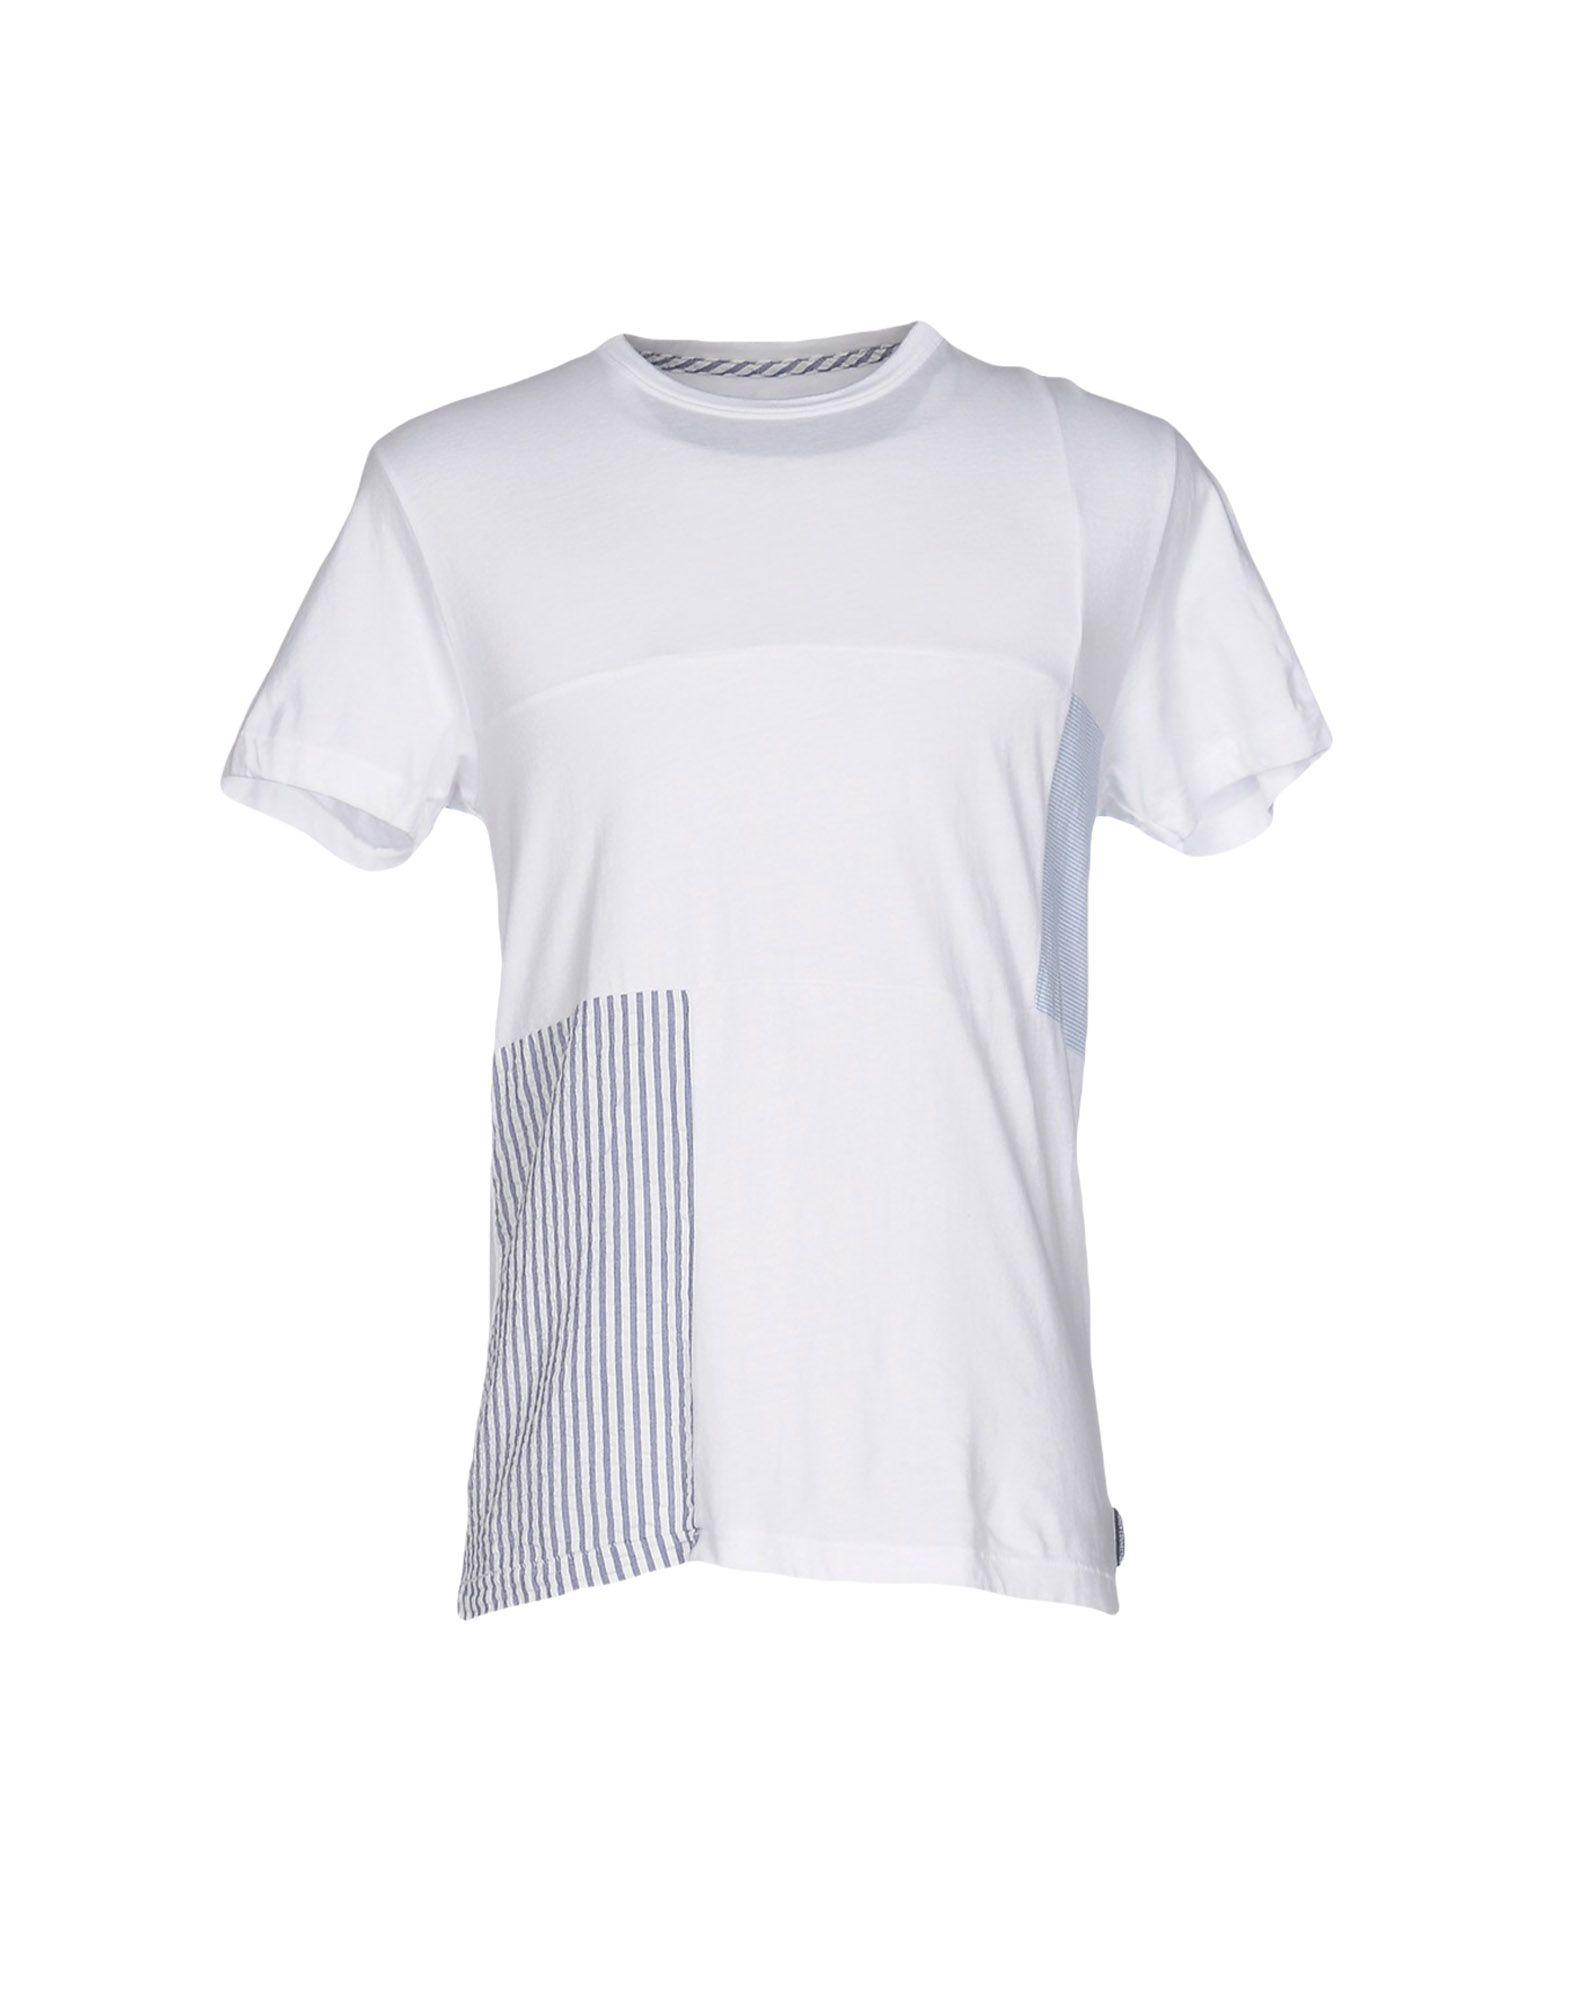 French connection t shirt in white for men lyst for French connection t shirt dress